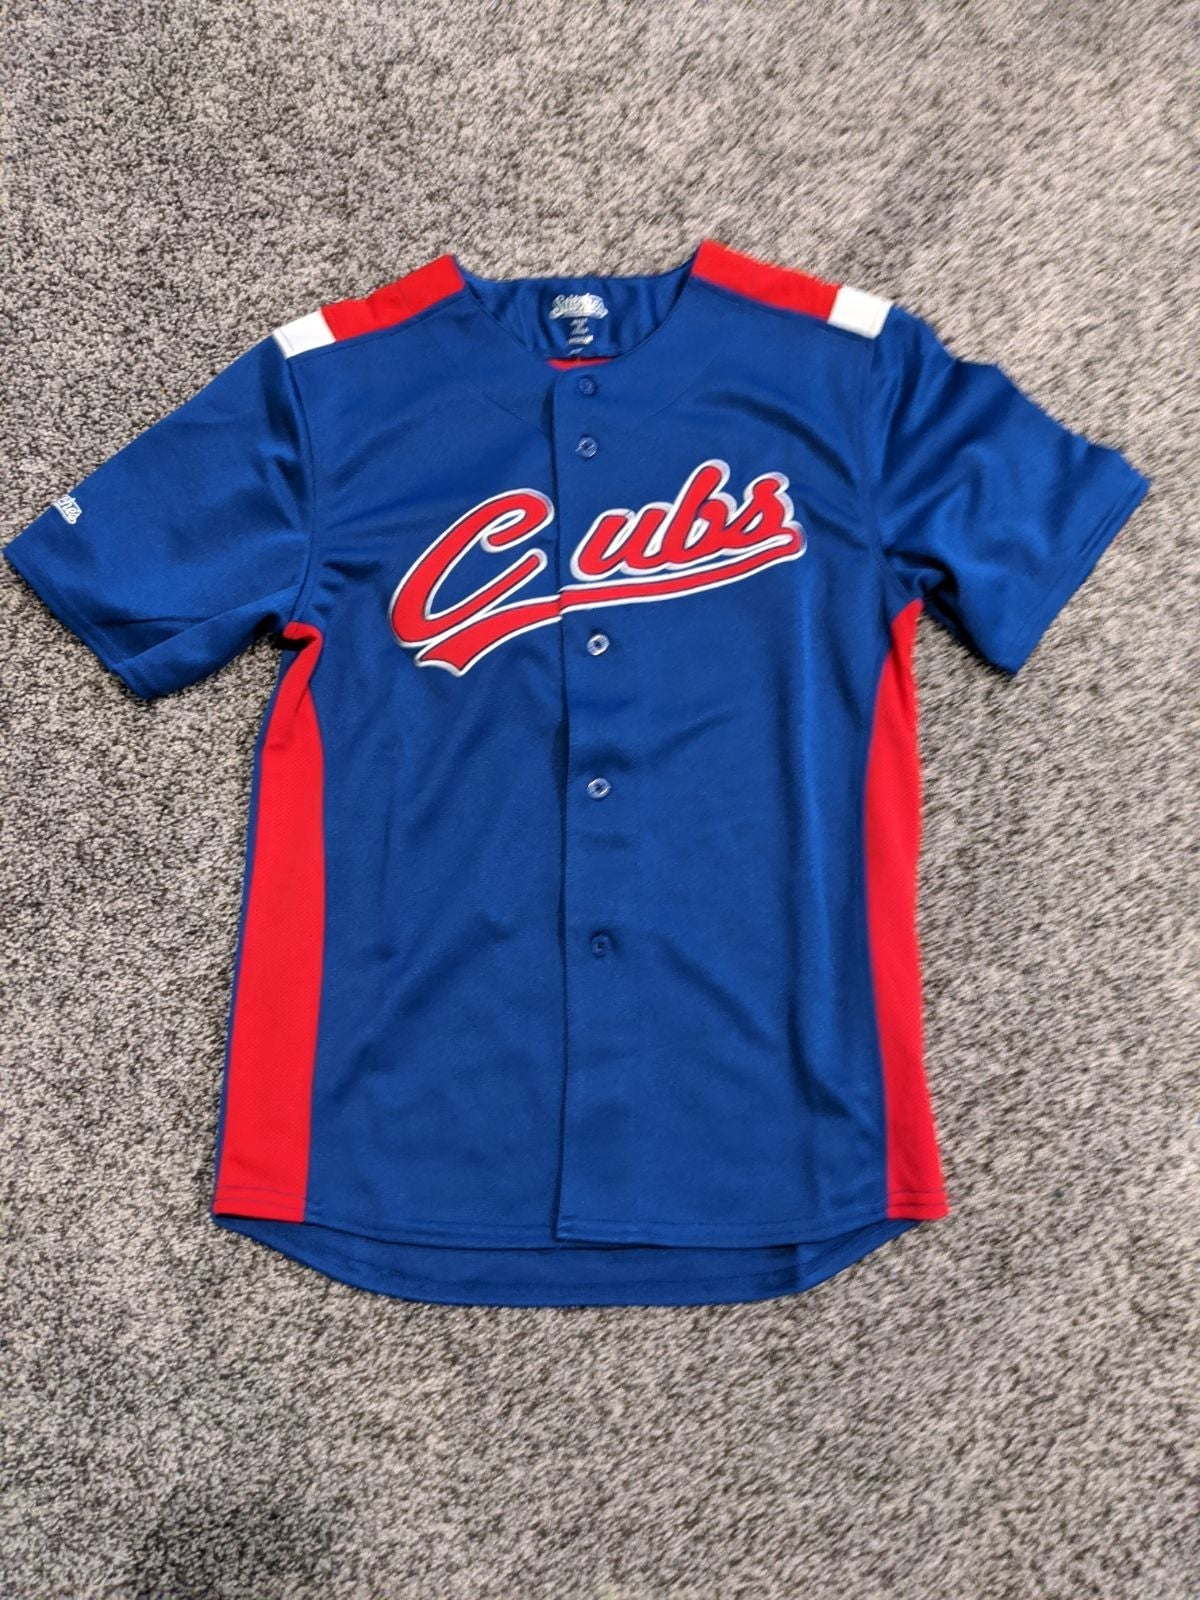 Cubs Jersey Stitches MLB